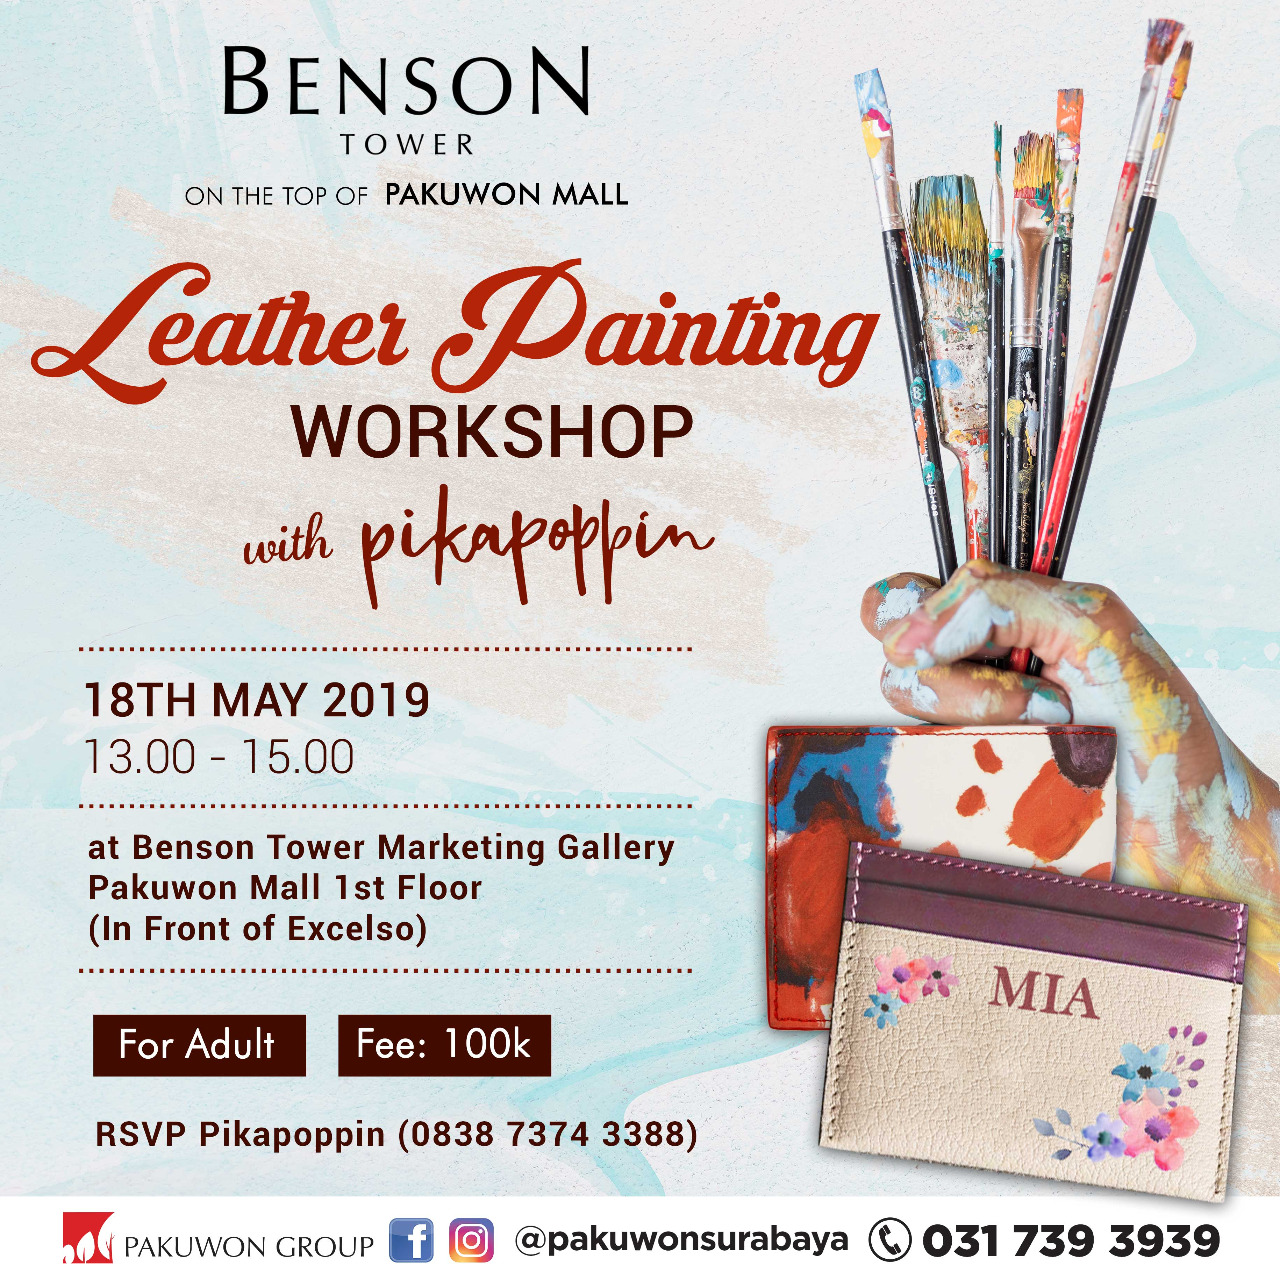 Leather Painting Workshop at Benson Tower with Pikapoppin